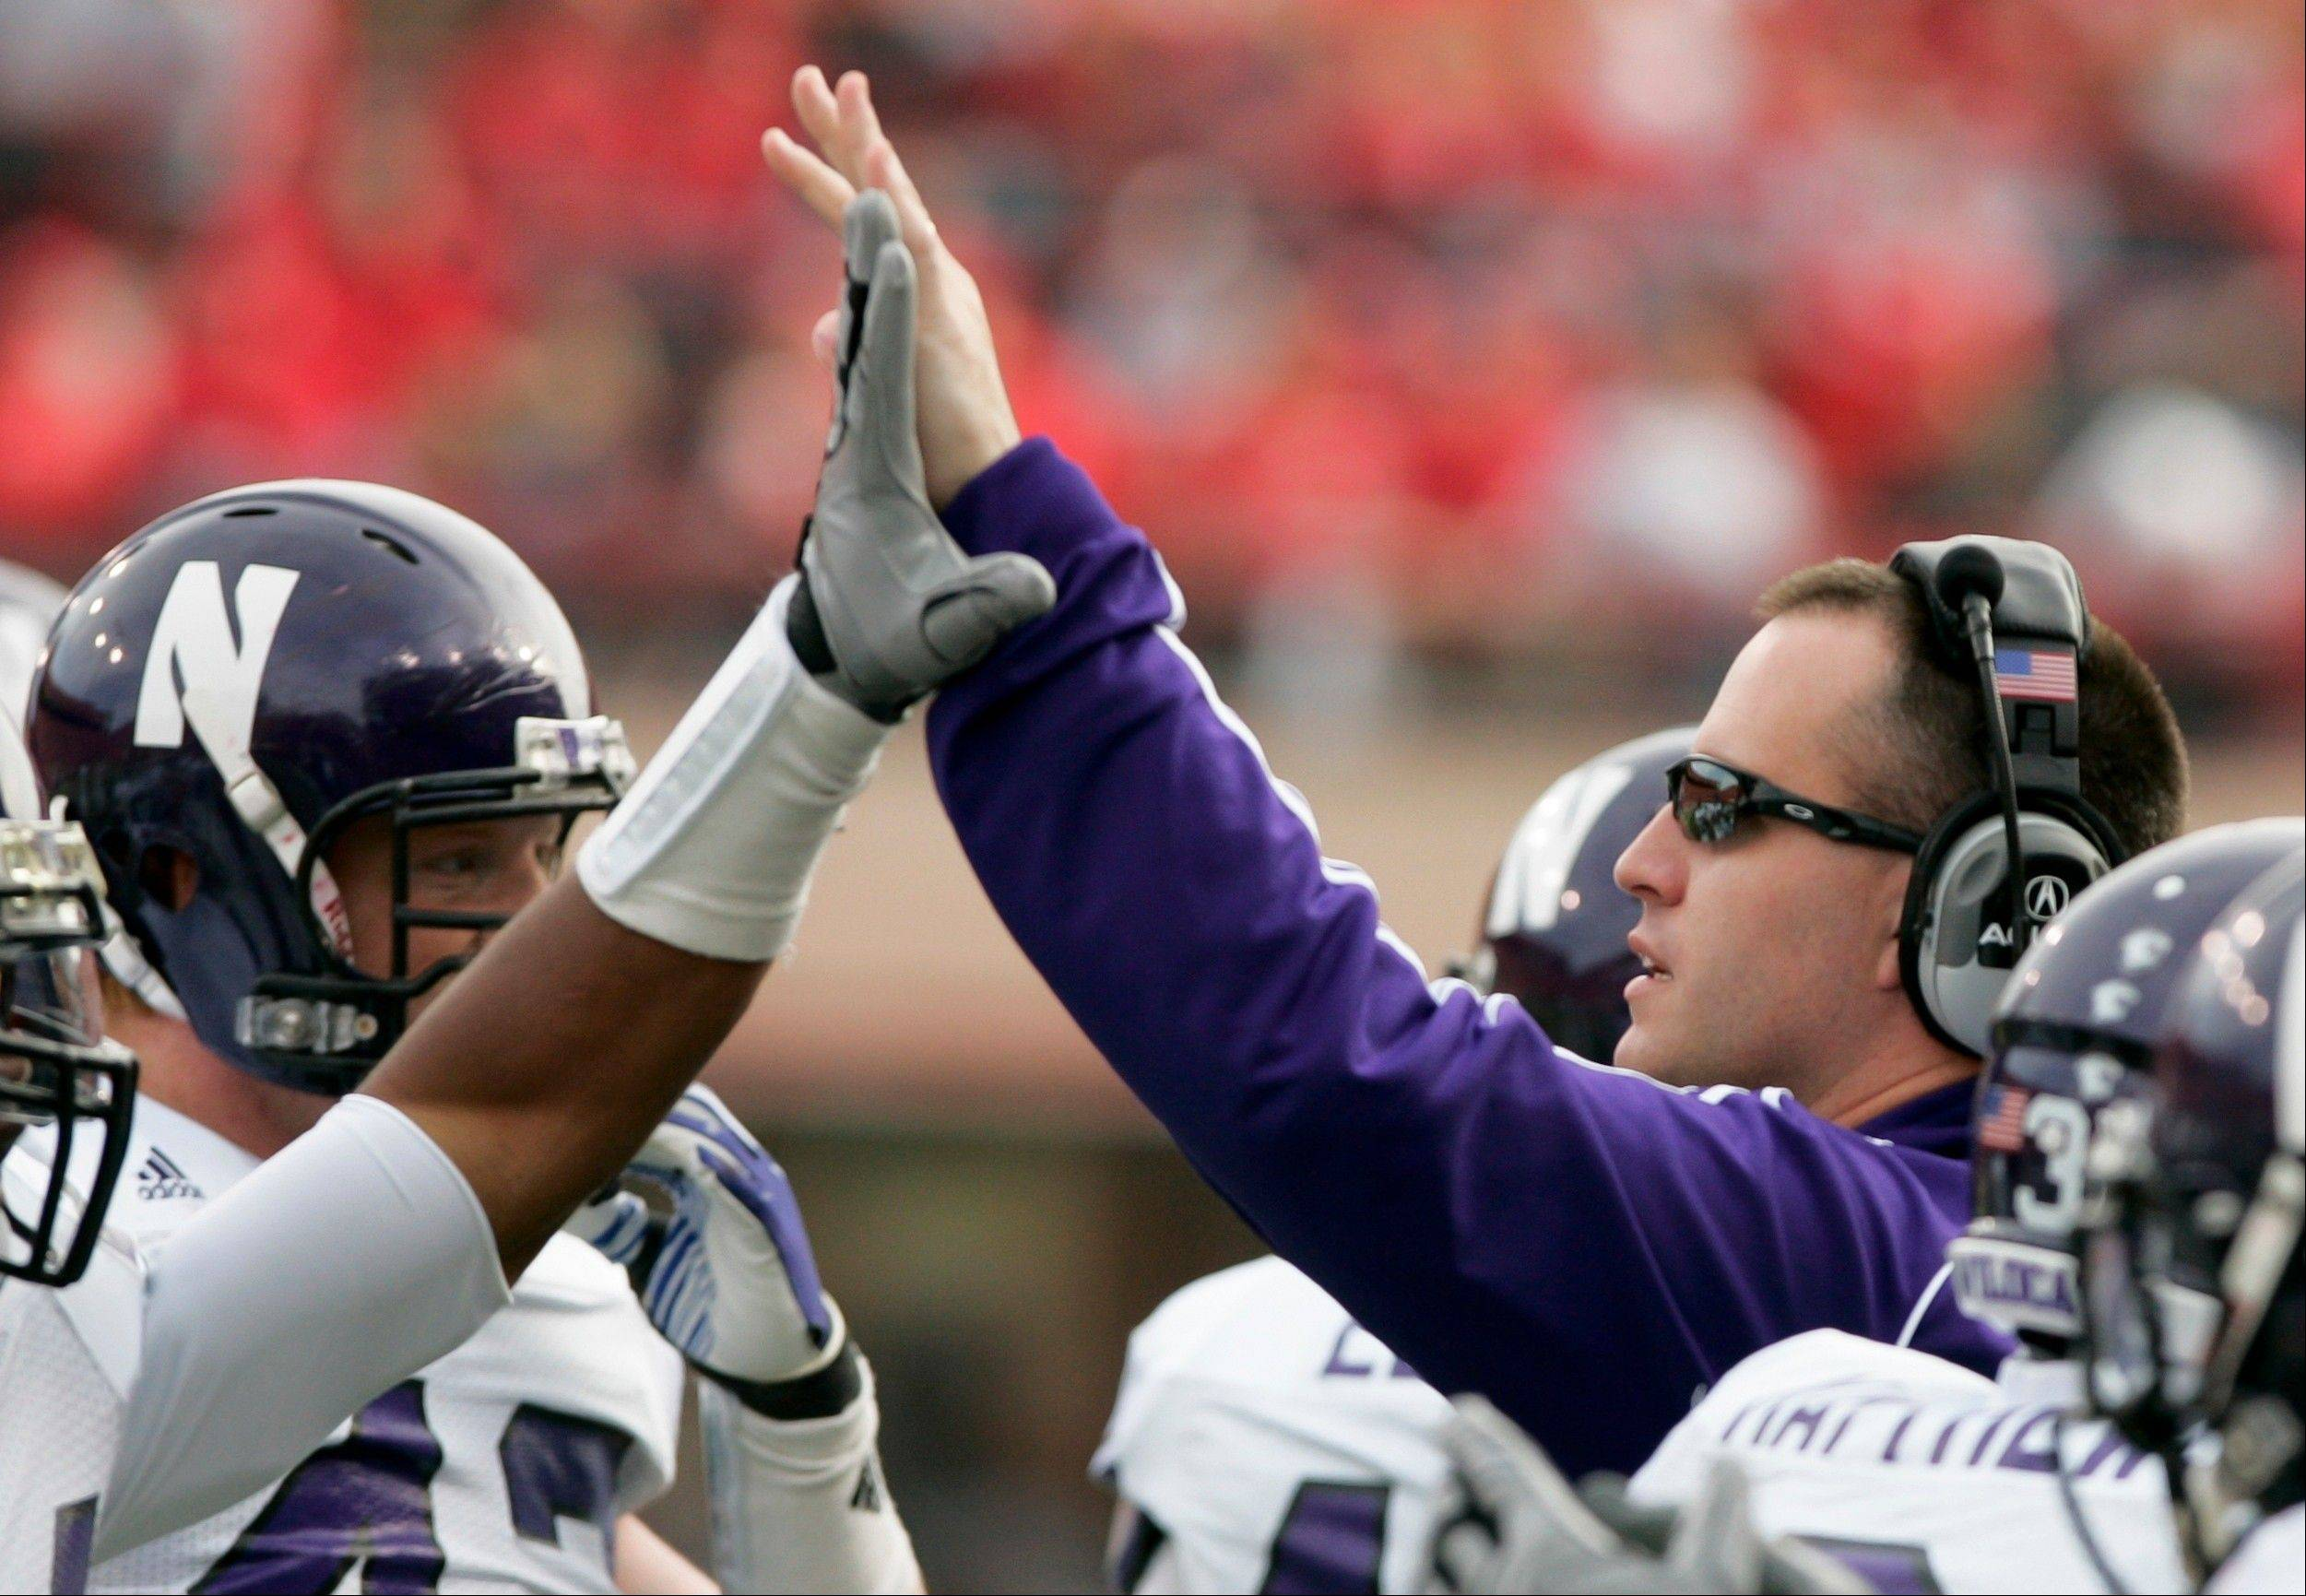 Northwestern head coach Pat Fitzgerald high-fives Ibraheim Campbell, who recovered a fumble against Nebraska last season. Campbell, a safety, was NU's leading tackler in 2011 and the Wildcats hope an improved linebacking core takes on that role this season.